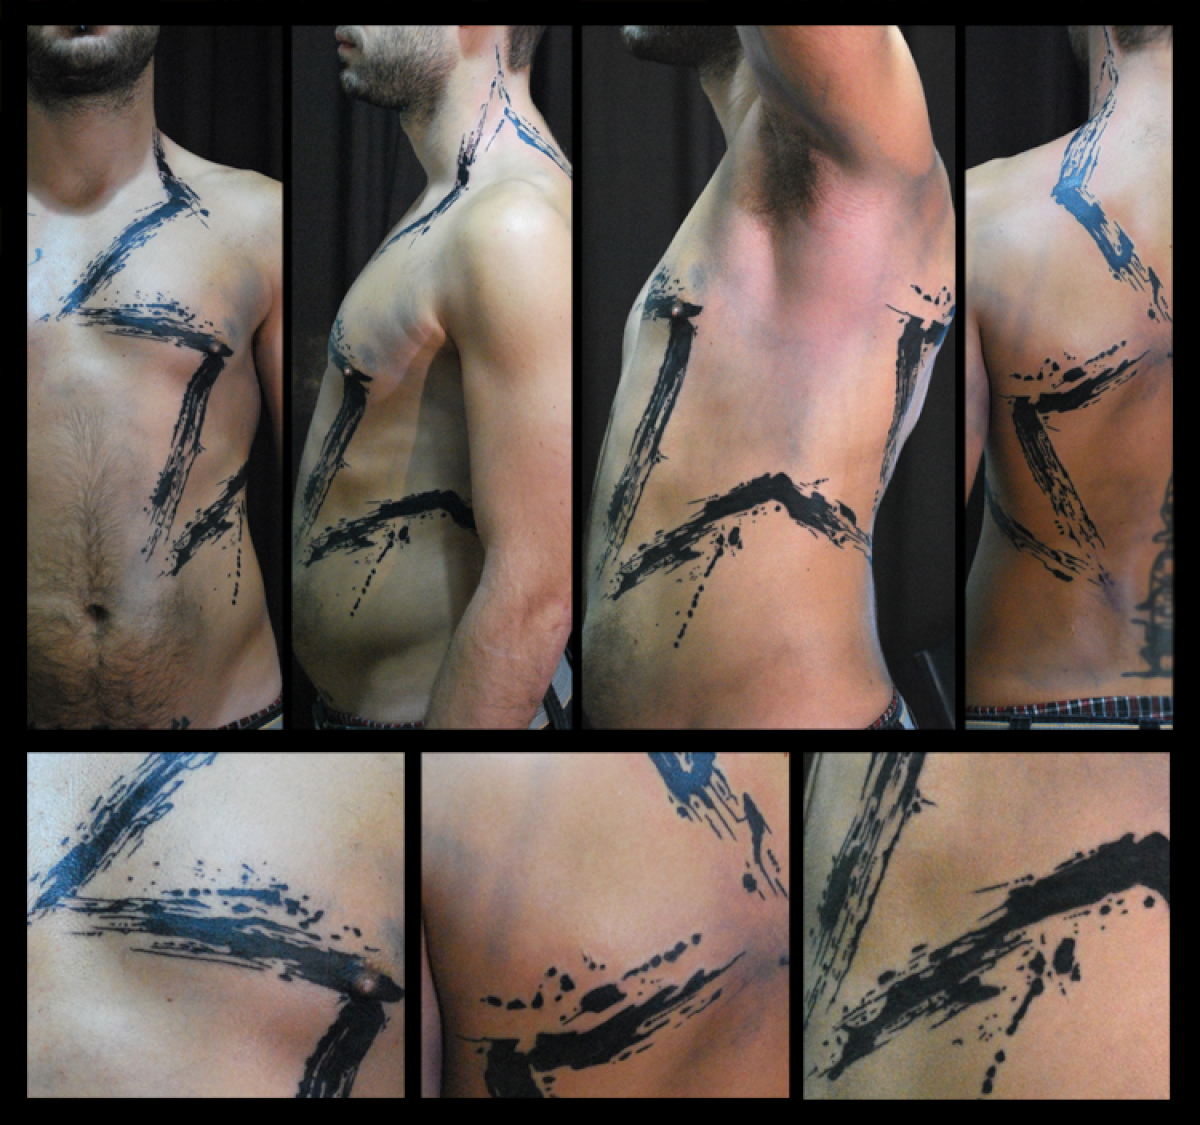 Body Black Star tattoo by Live Two